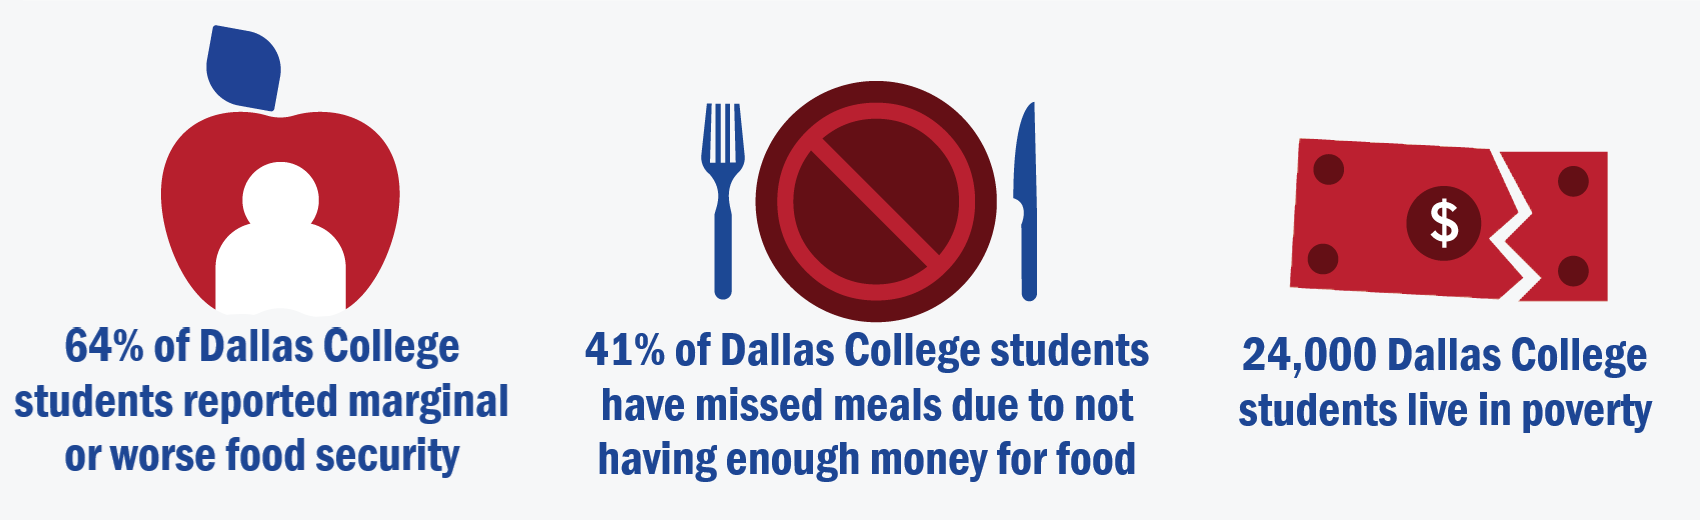 41% of Dallas College students have missed meals due to not having enough money for food; 24,000 Dallas College students live in poverty